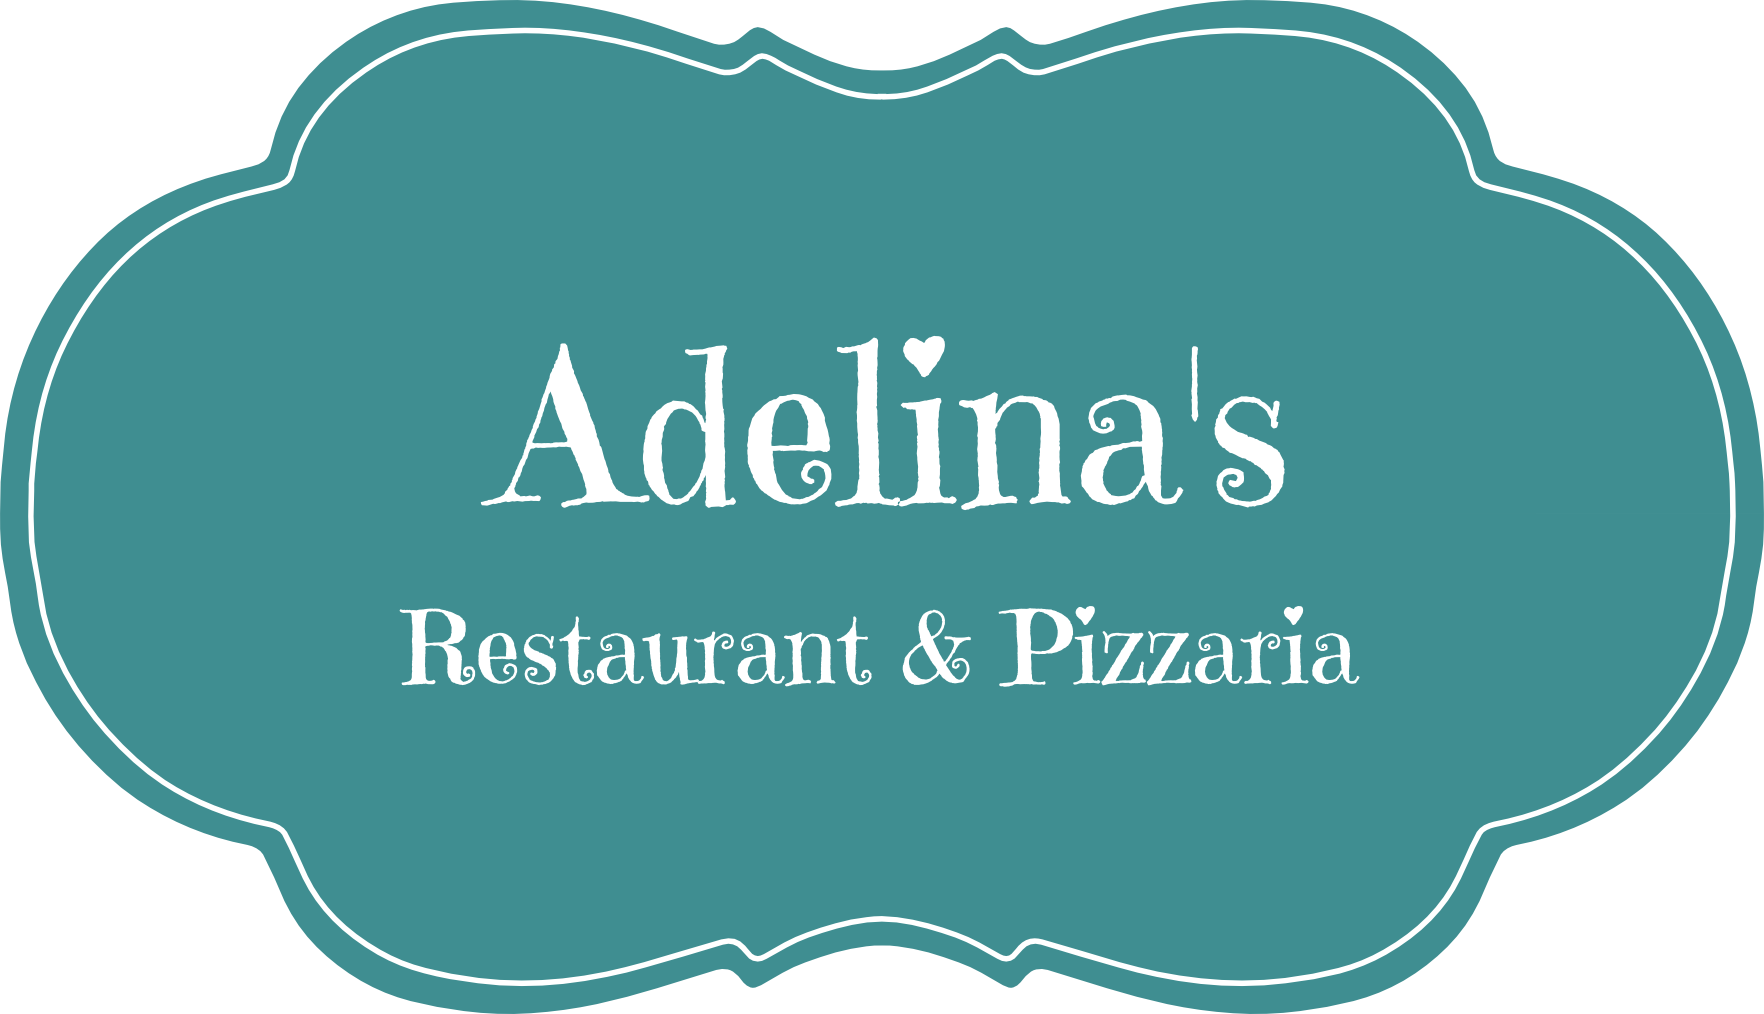 Adelina's Restaurant and Pizzaria